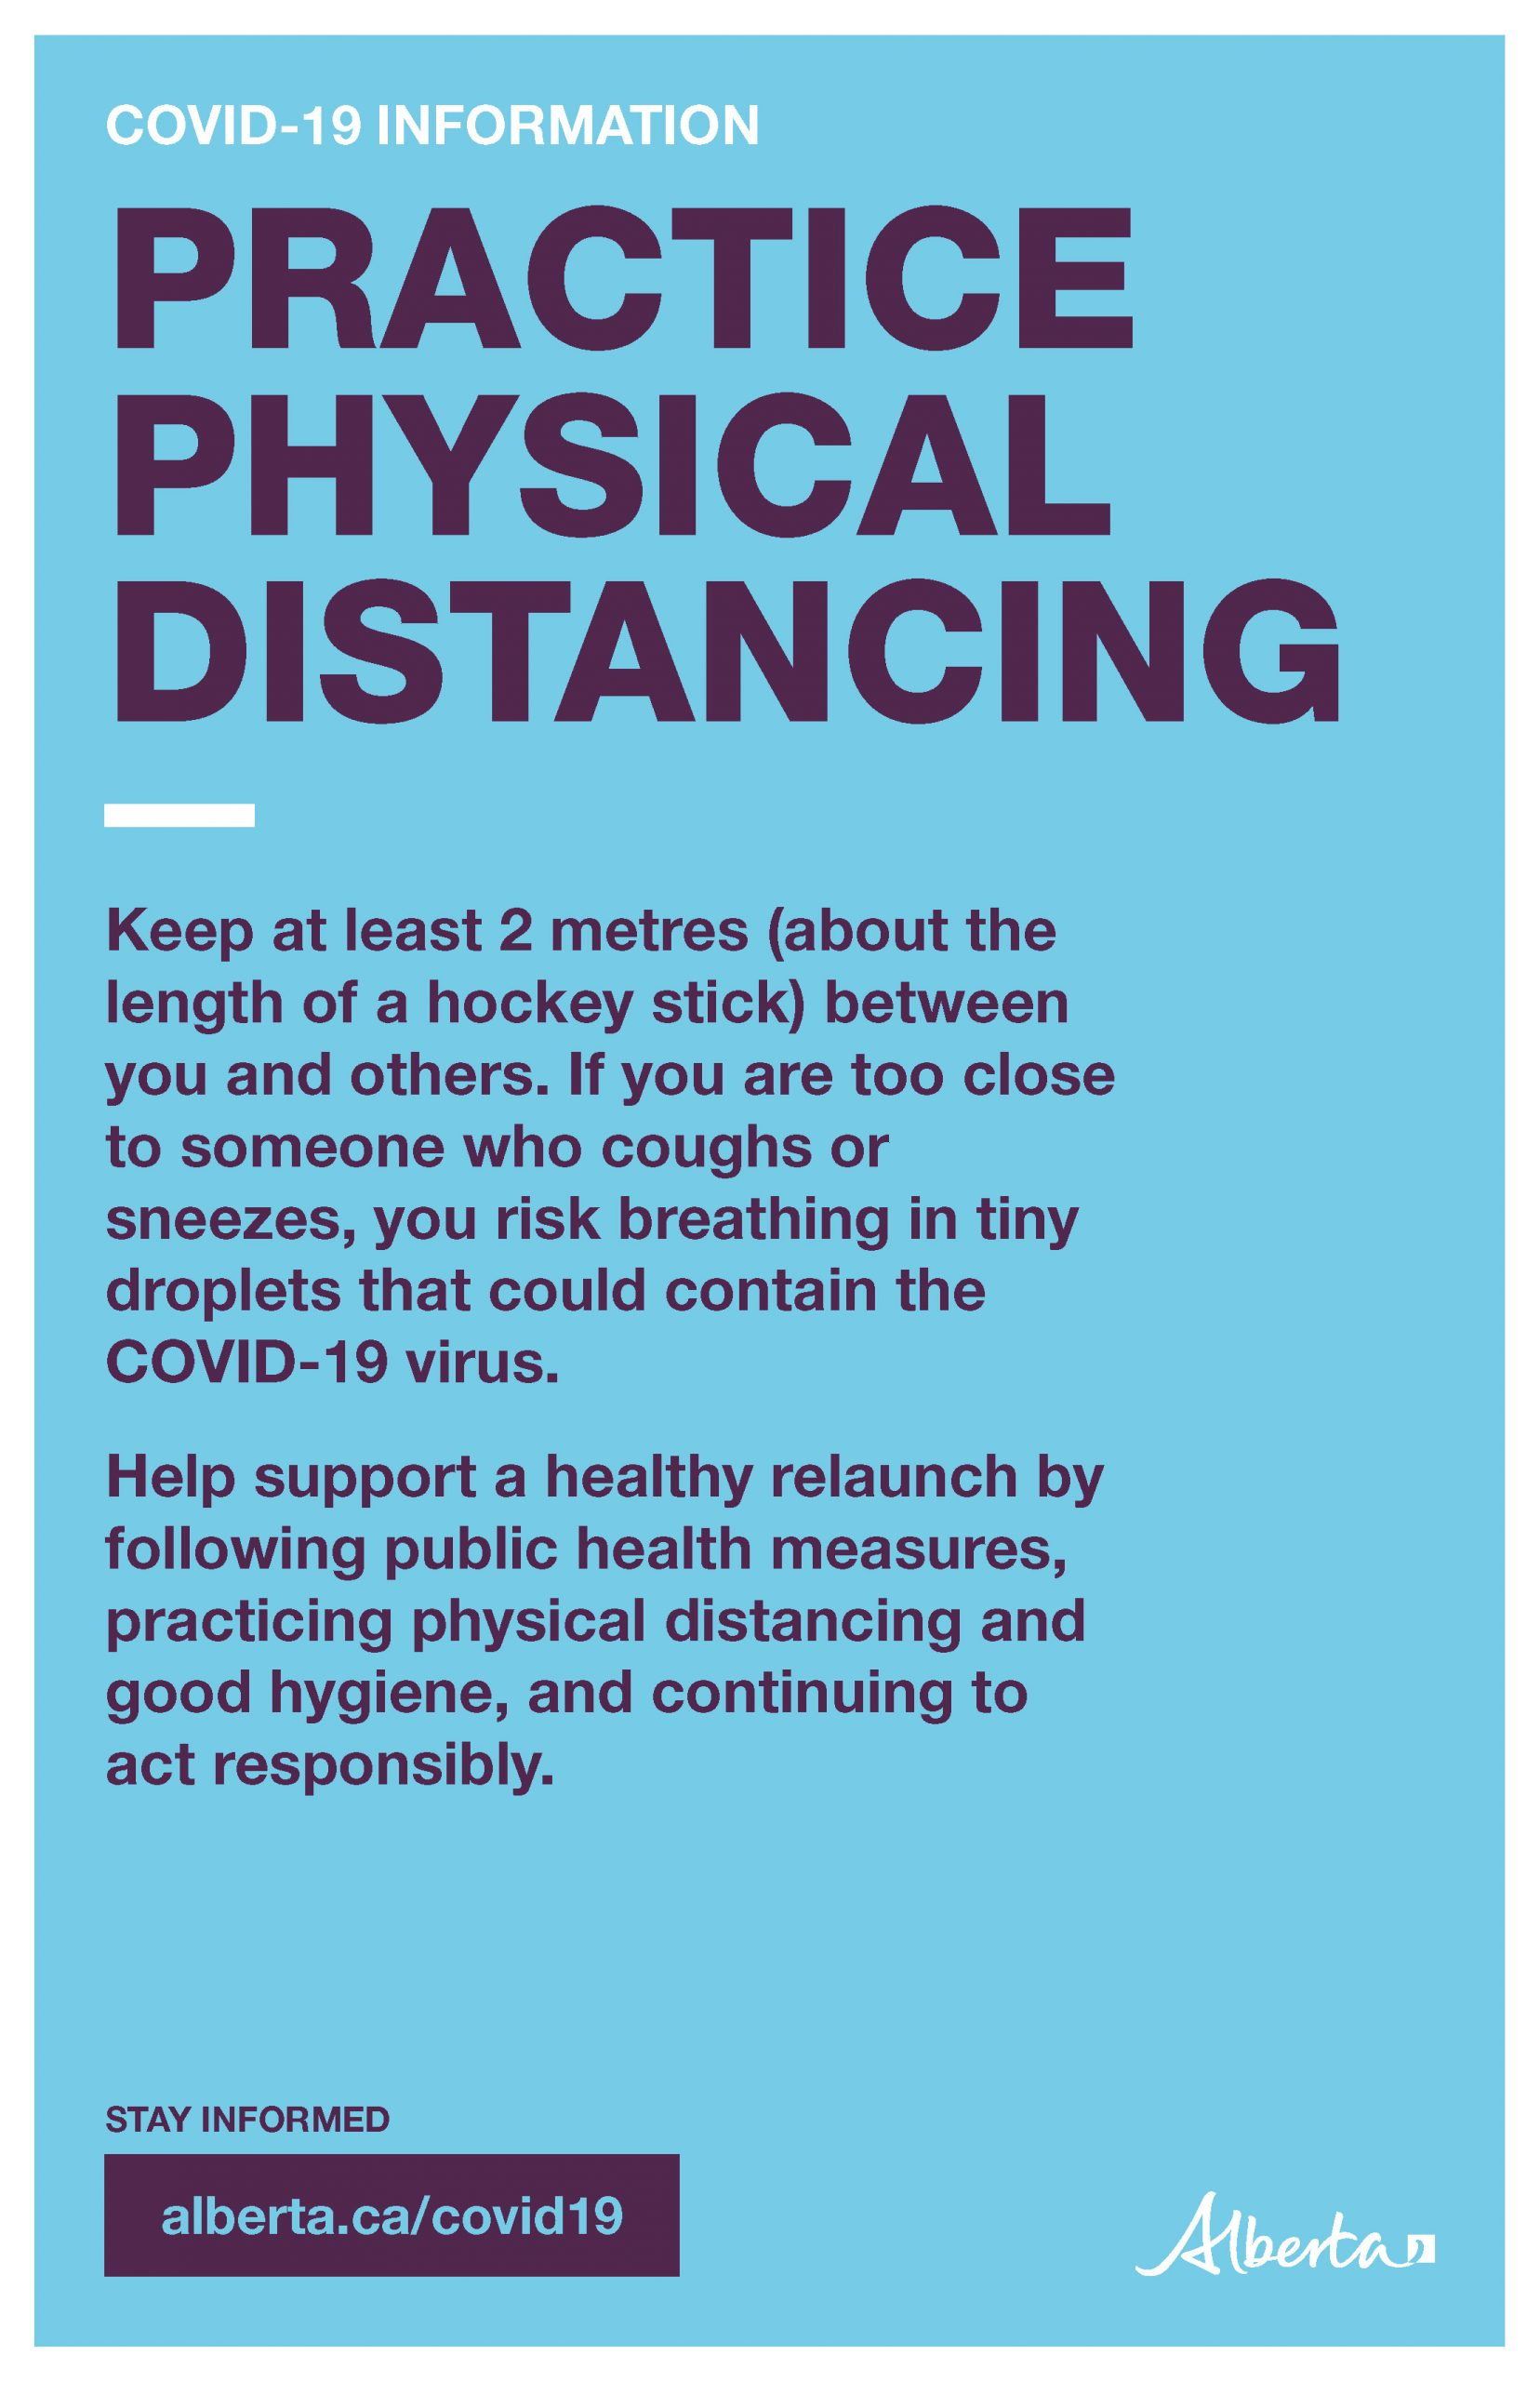 Physical Distancing (Decrease Risk Exposure to COVID-19) - Poster